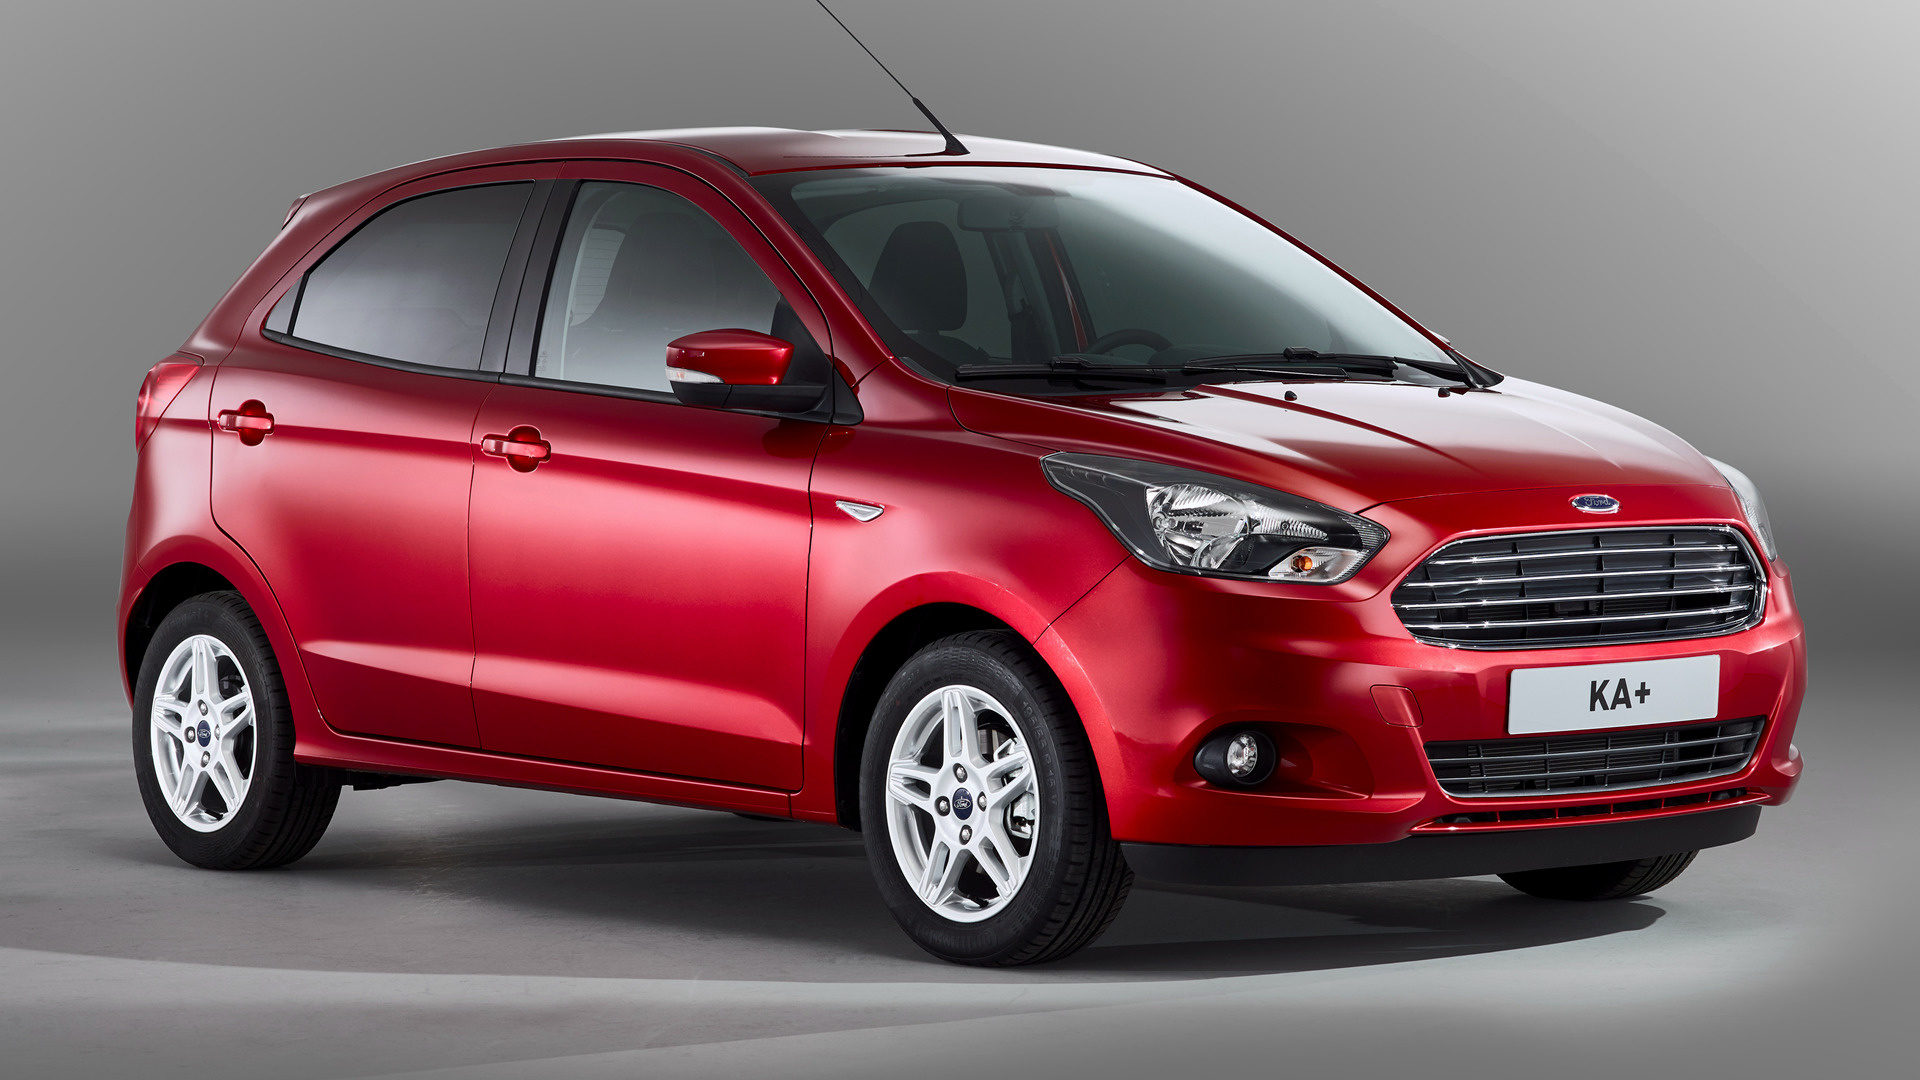 Ford Ka+ (2016) Wallpapers and HD Images - Car Pixel